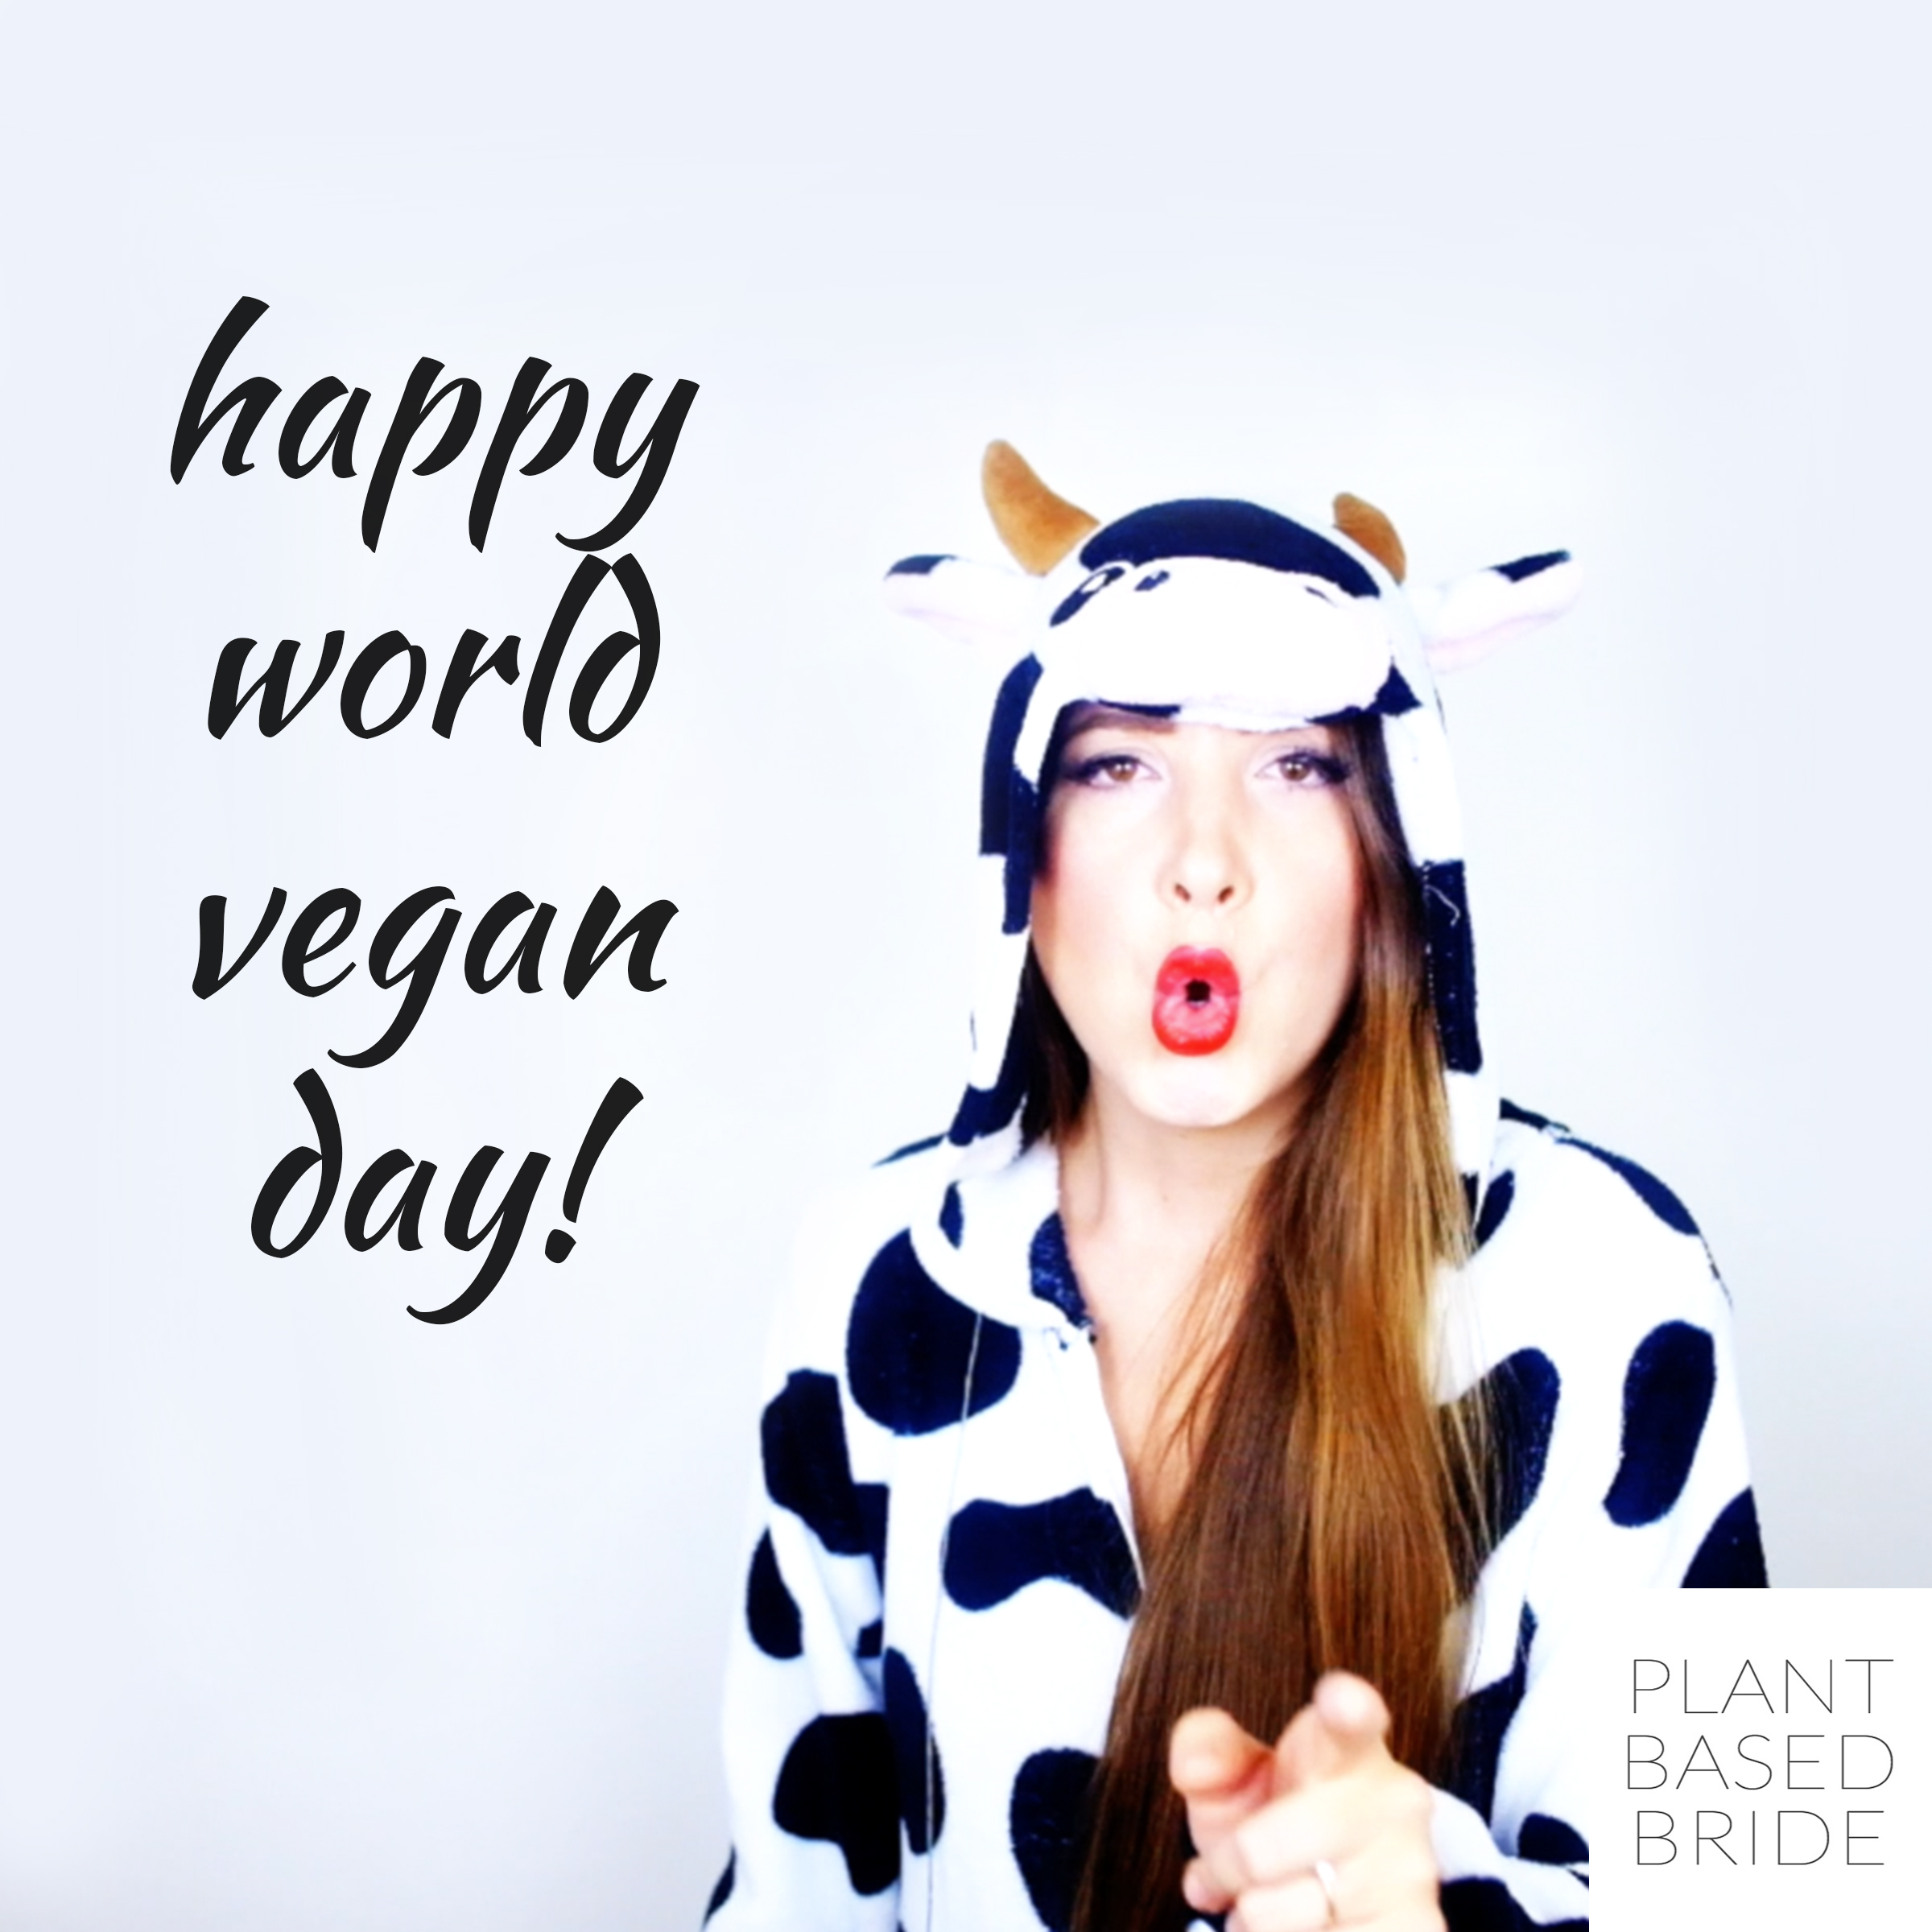 It's world vegan day! Check out my first YouTube video now!